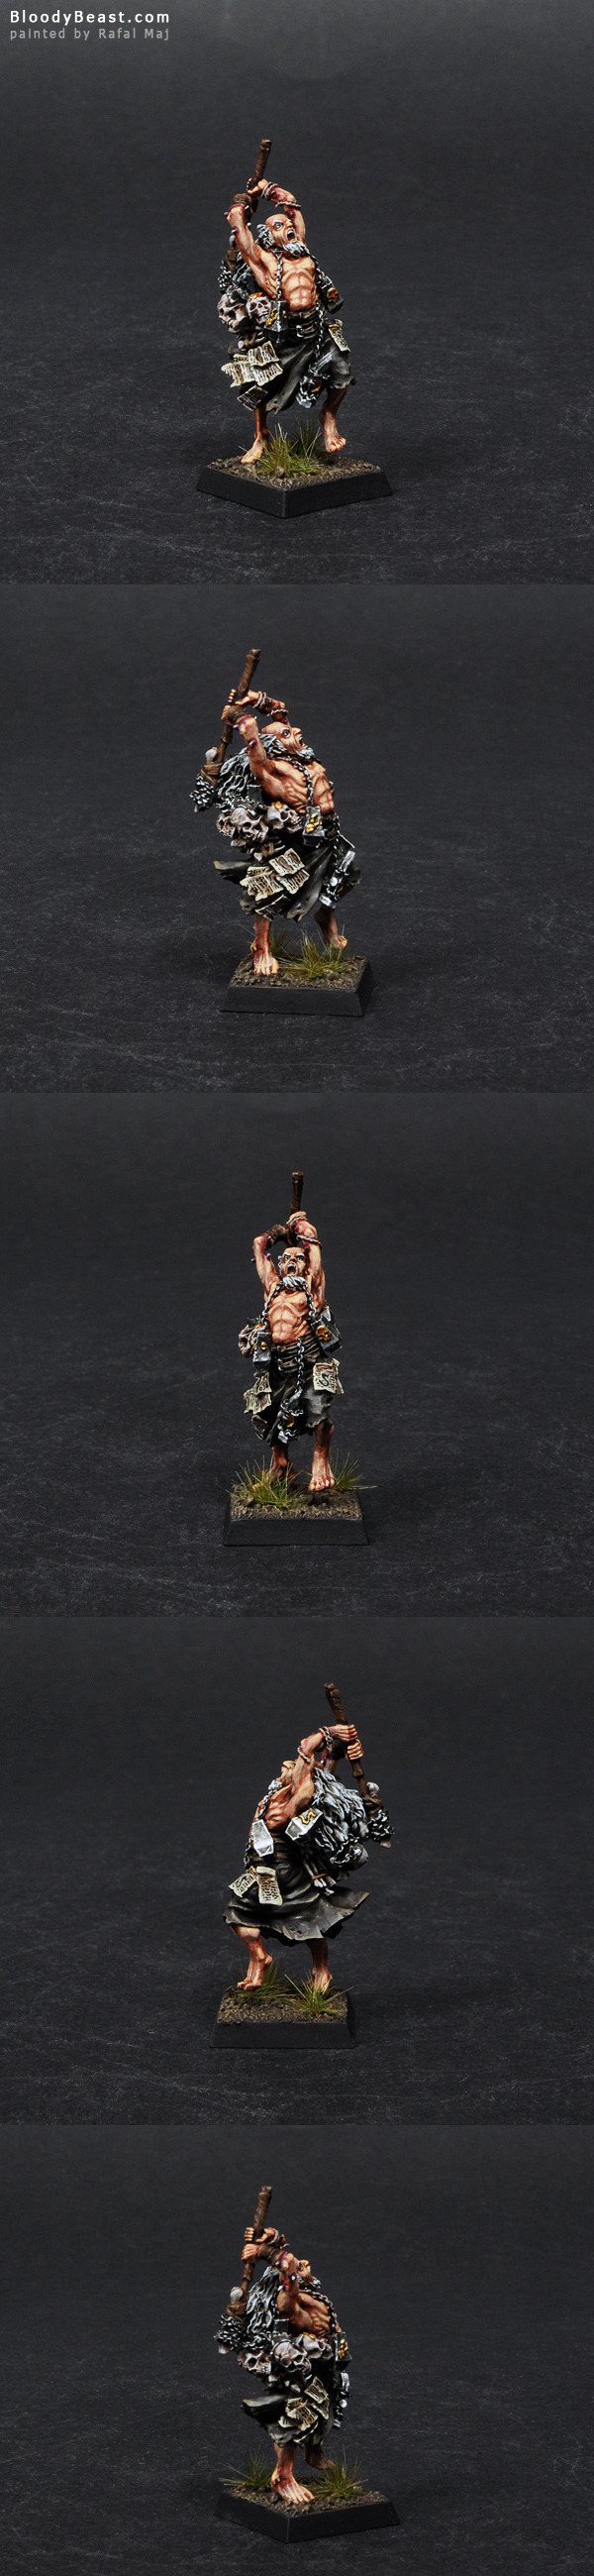 The Empire Warrior Priest painted by Rafal Maj (BloodyBeast.com)